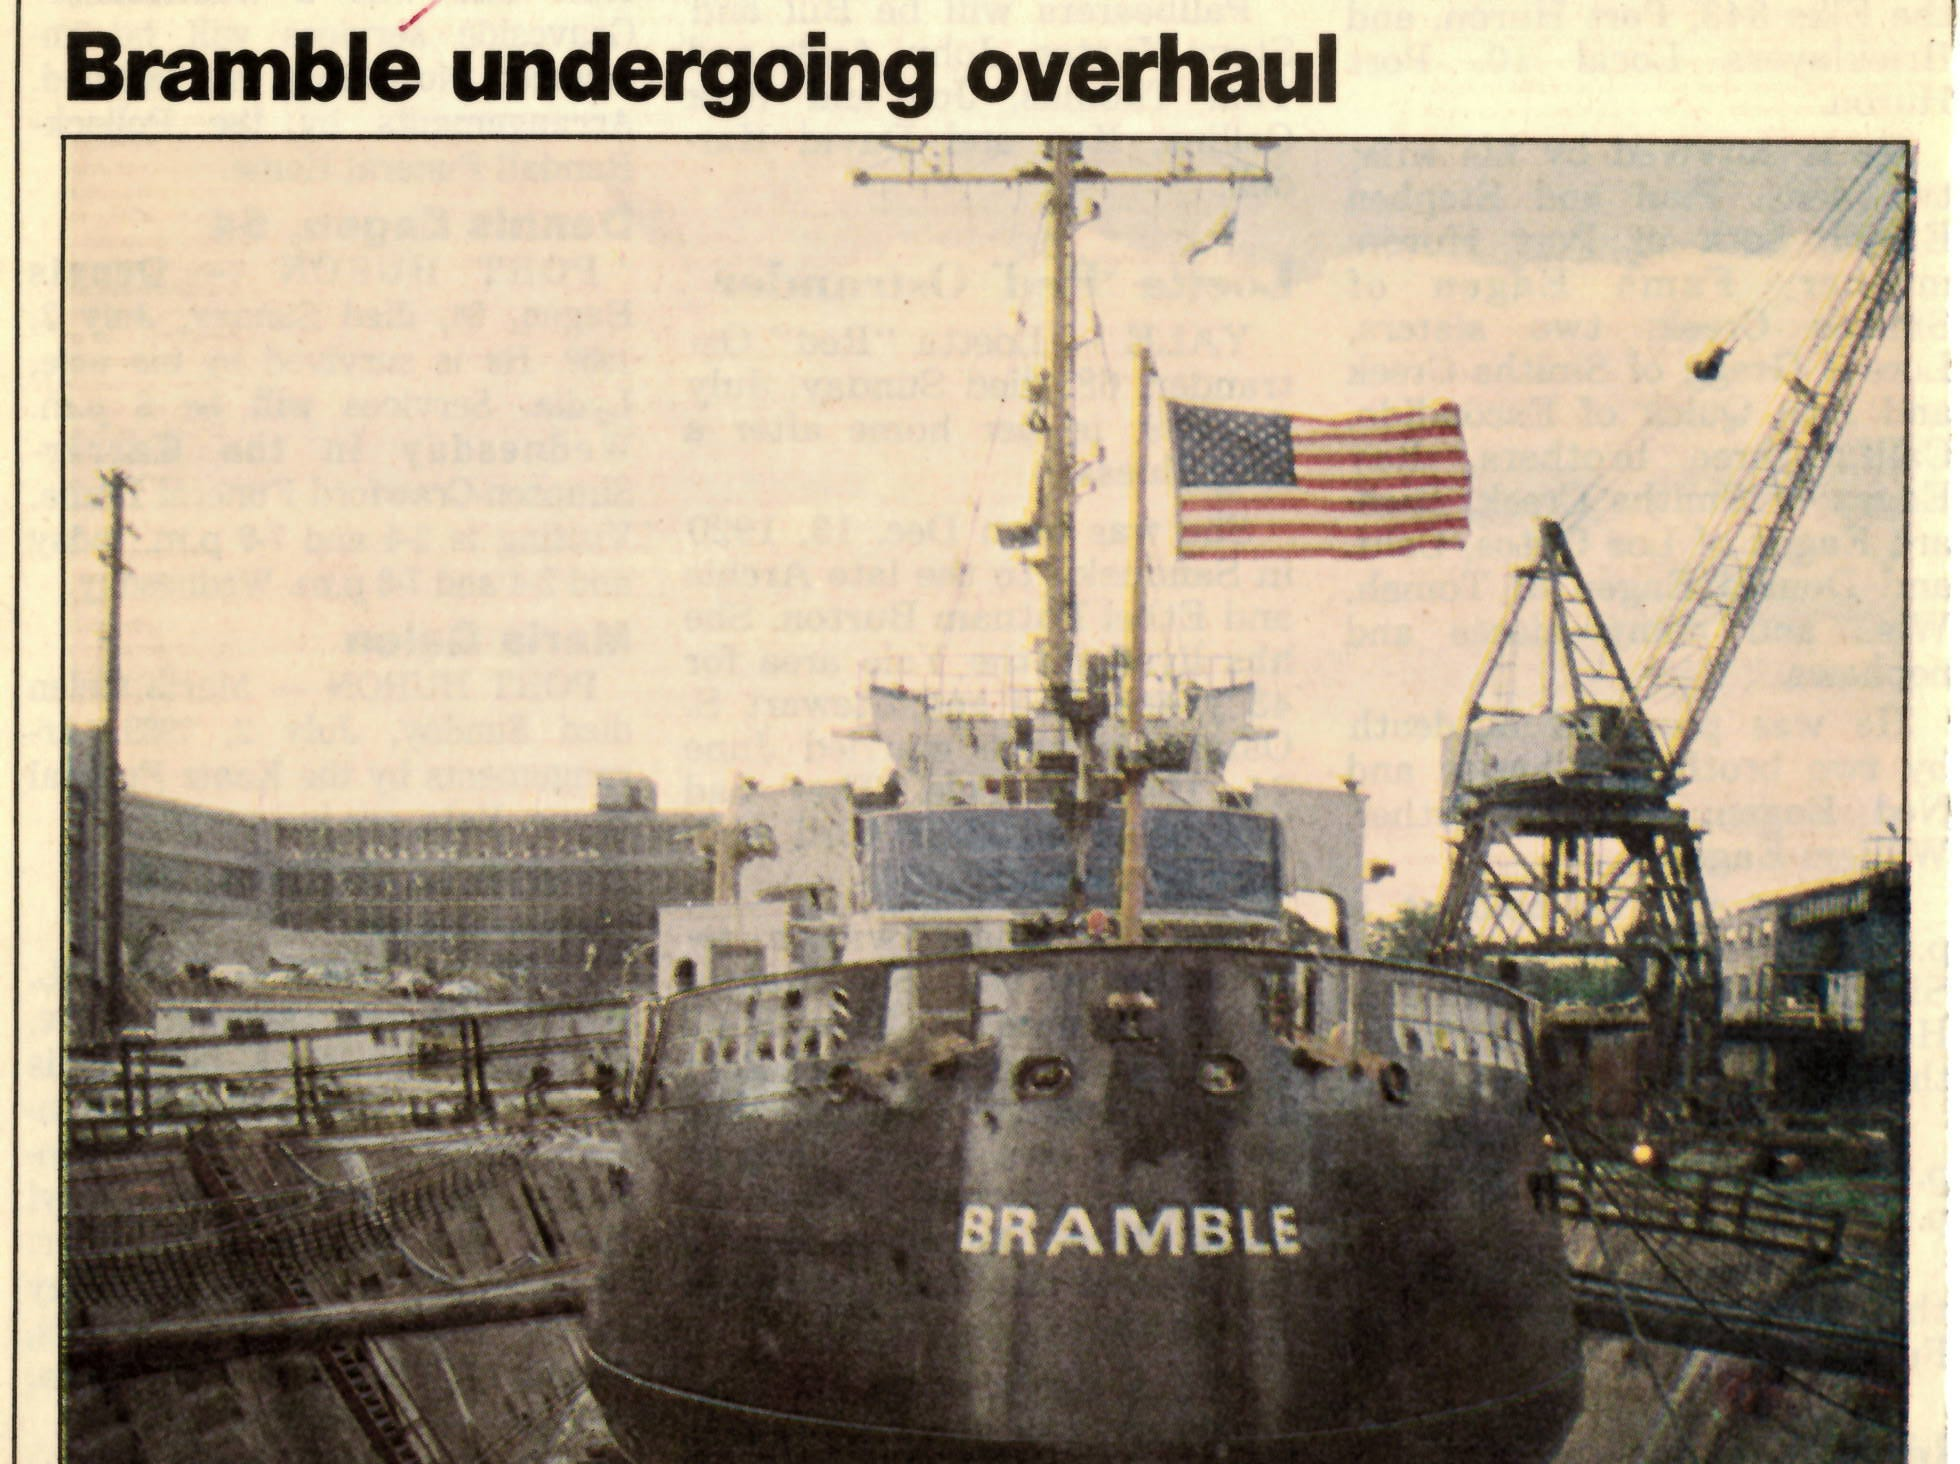 A newspaper clipping from July 1989 shows the USCGC Bramble in a drydock in Toledo while receiving new engines.